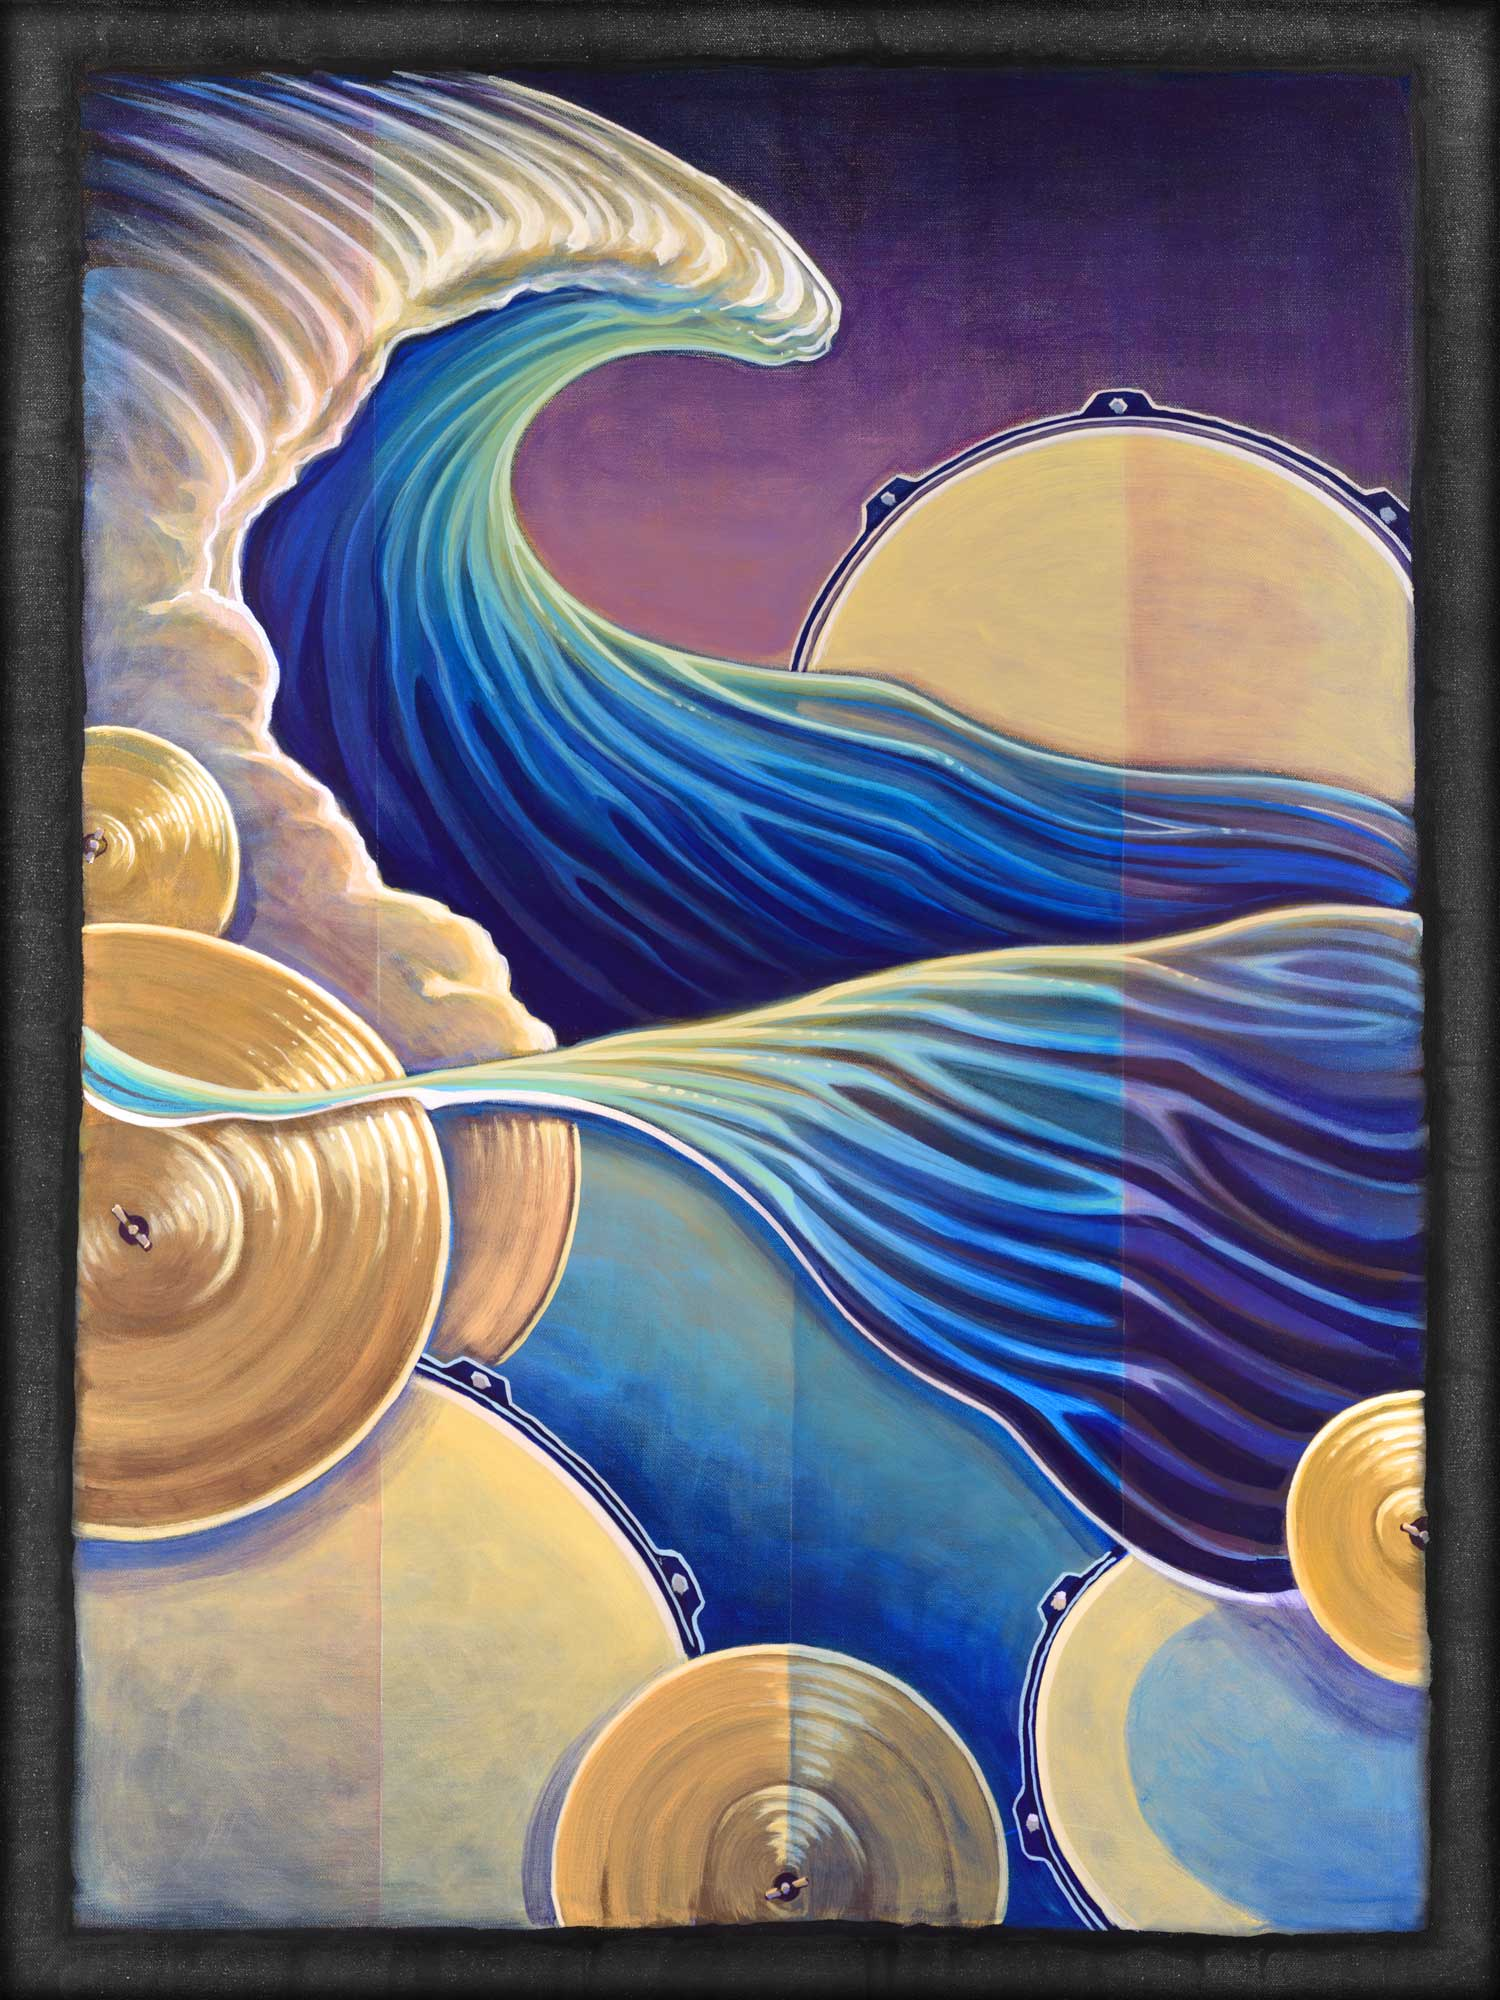 Live art painting of a drum wave painted at the Redwood Coast Music Festival in Humboldt